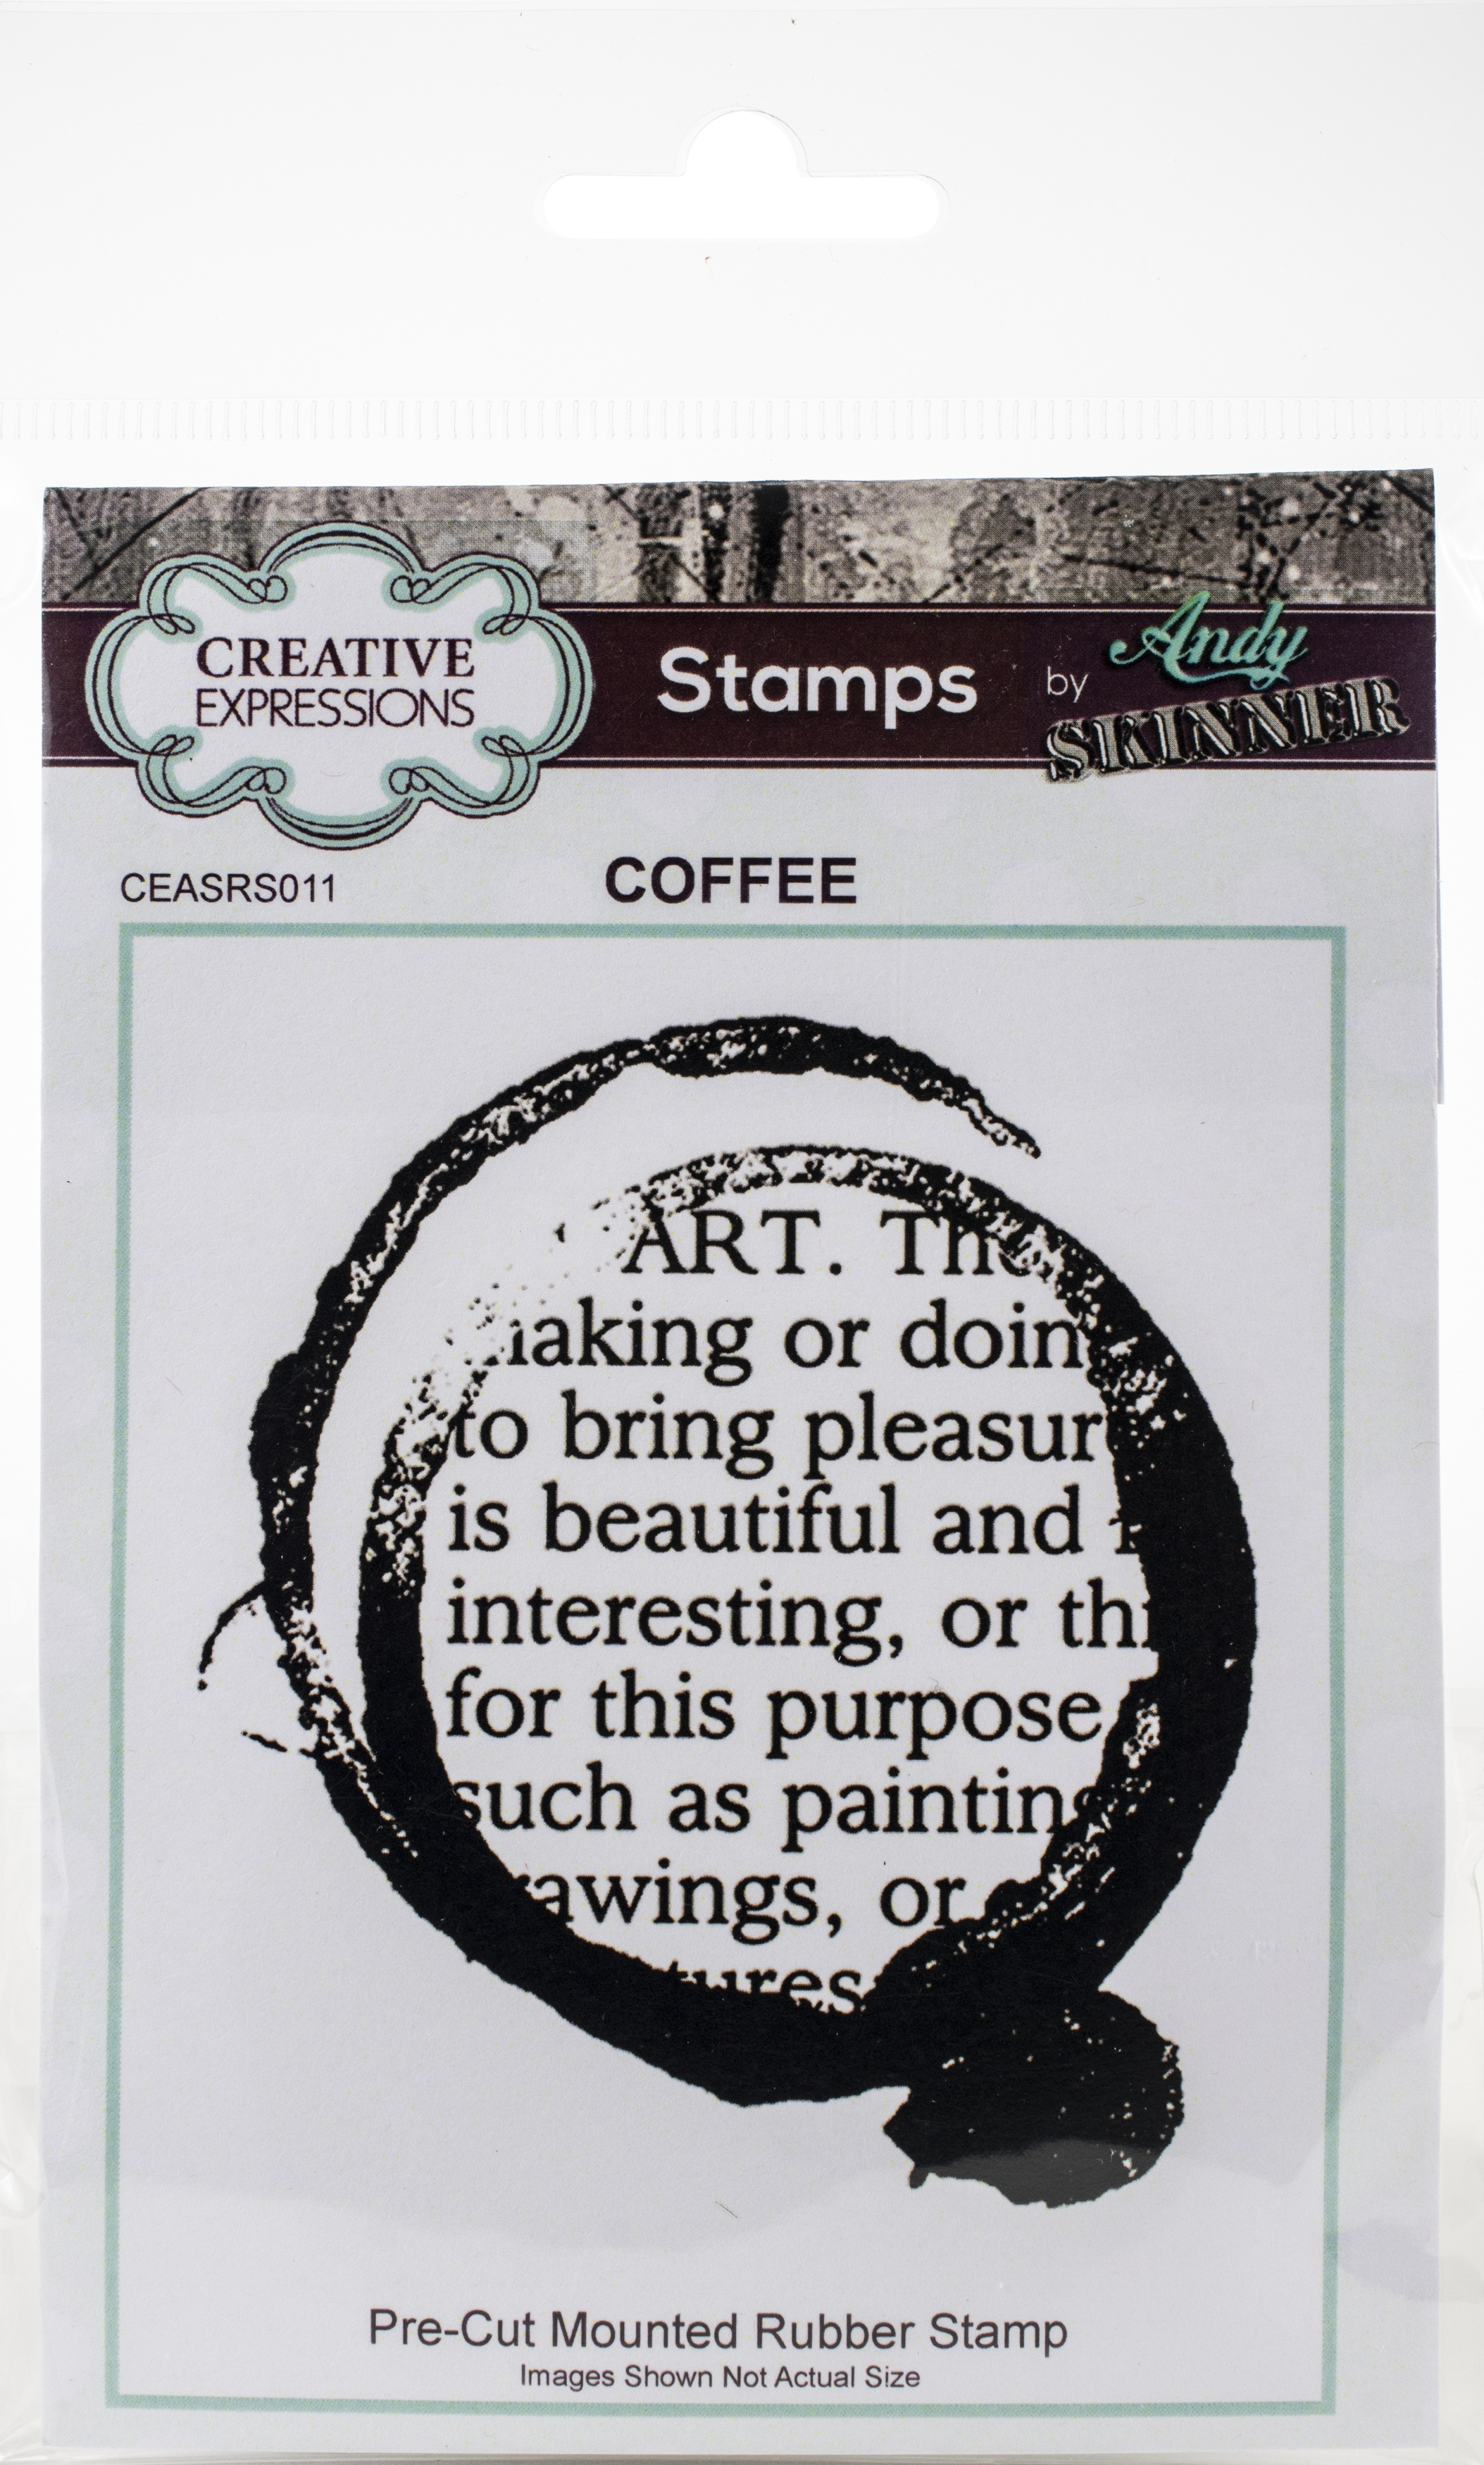 Creative Expressions Rubber Stamp By Andy Skinner-Coffee Art